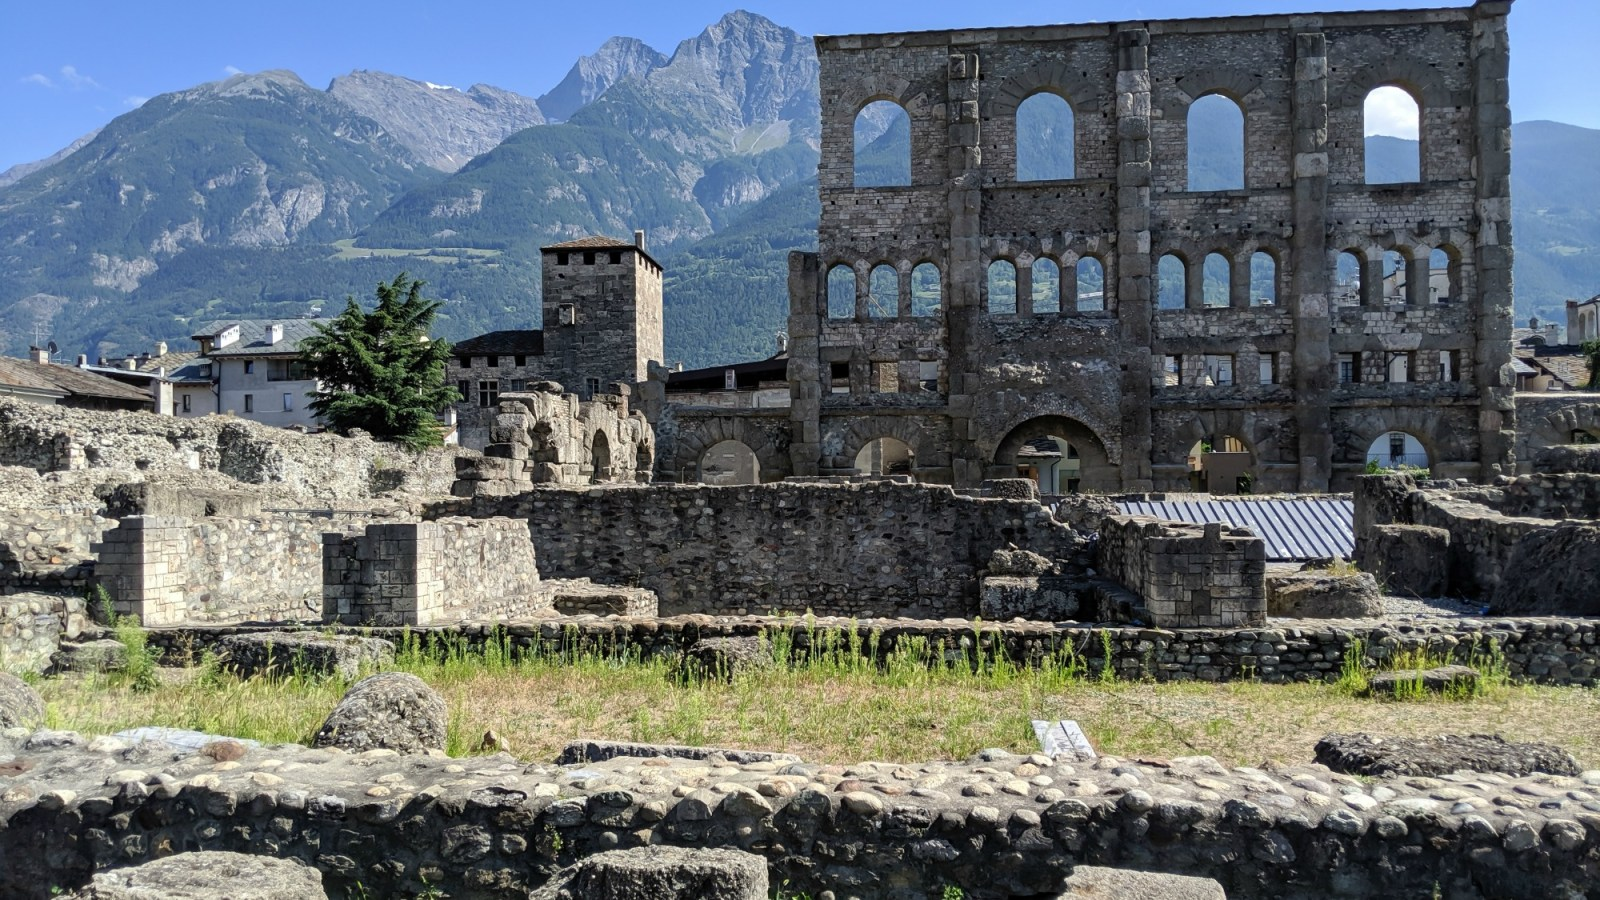 Roman Theater, roman ruins | How to Spend 1 Day in Aosta, Italy // The Capital of the Aosta Valley | Things to see in Aosta, Things to do in Aosta, Where to eat in Aosta, the smallest of Italy's 20 regions #aosta #italy #aostavalley #traveltips #timebudgettravel #romanruins #ancient #ruins